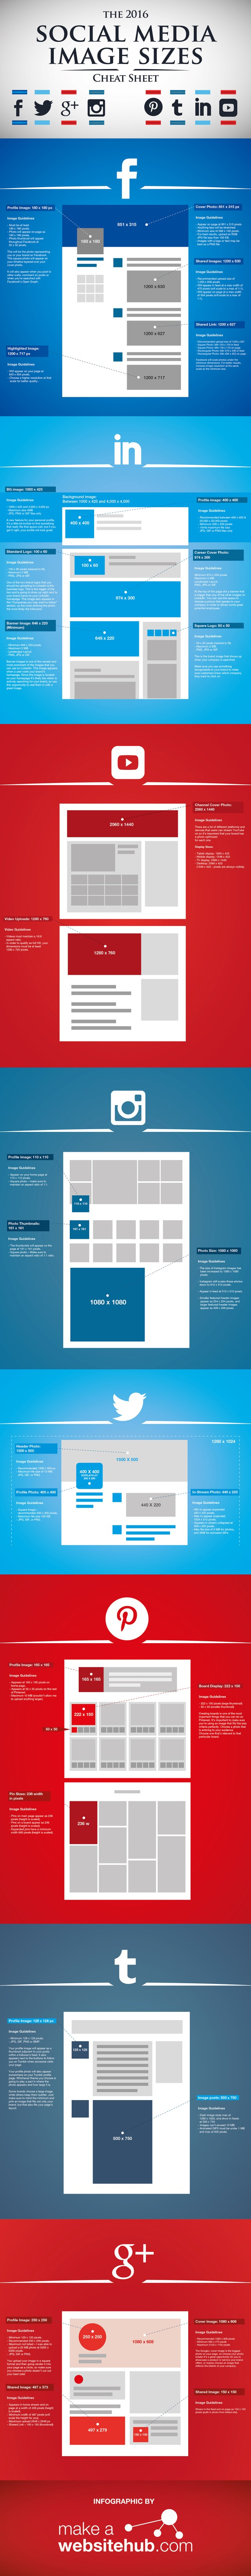 Social Media Image Sizes for All Networks [Infographic]